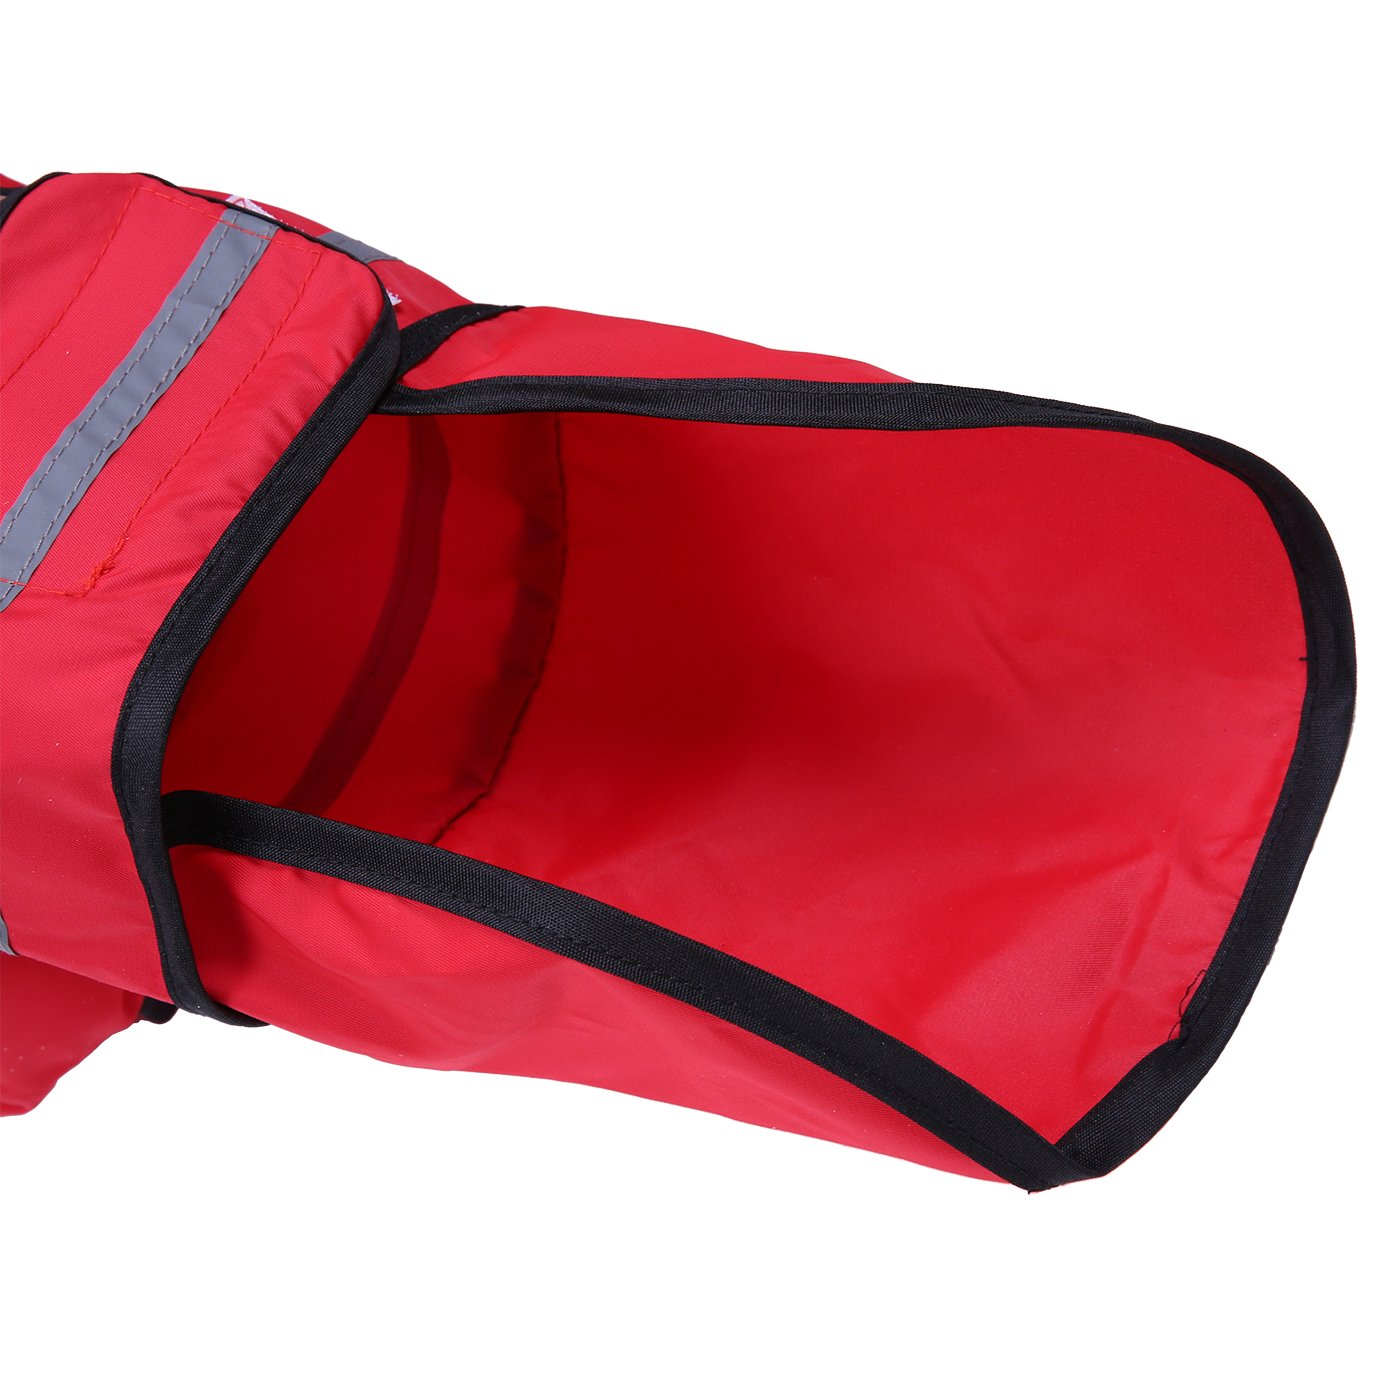 HDE Dog Raincoat Hooded Slicker Poncho for Small to X-Large Dogs and Puppies (Red, Medium) by HDE (Image #6)